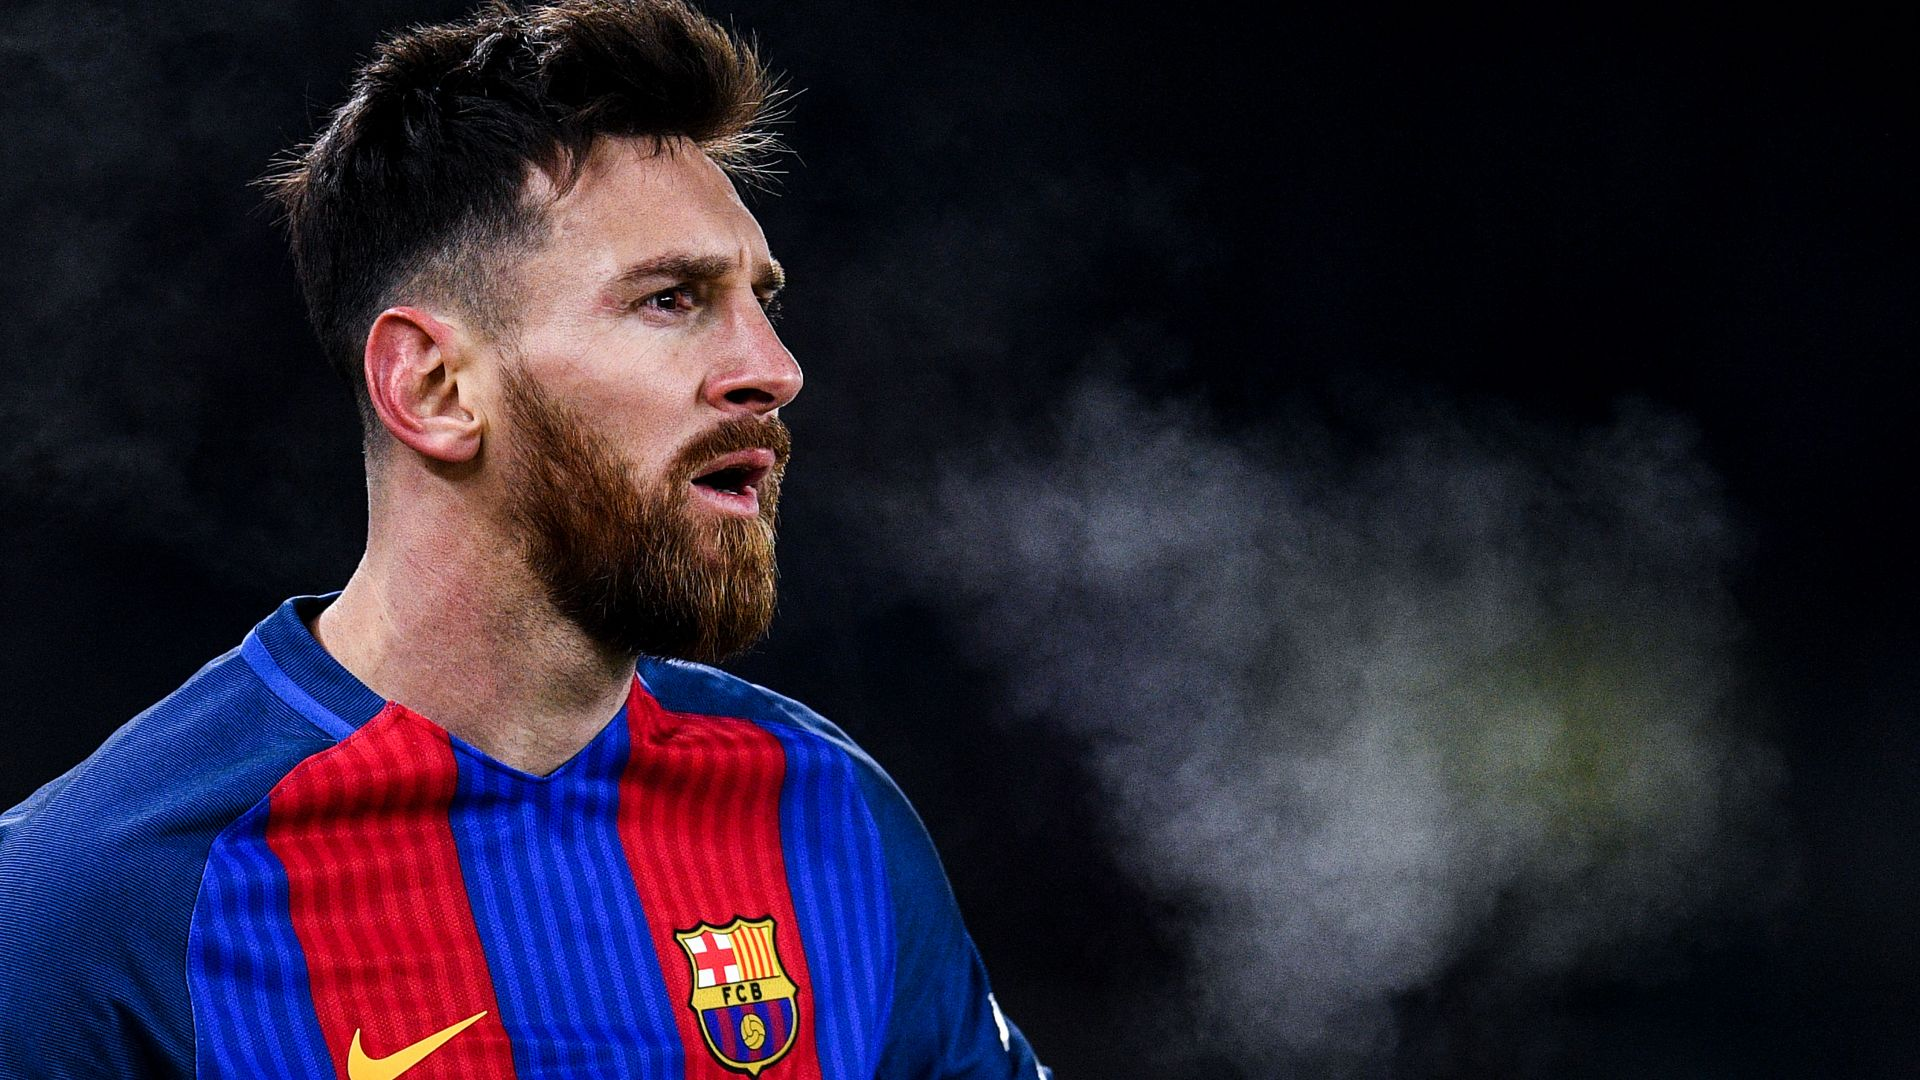 Lionel Messi, soccer, football, The best players 2016, 4k (horizontal)